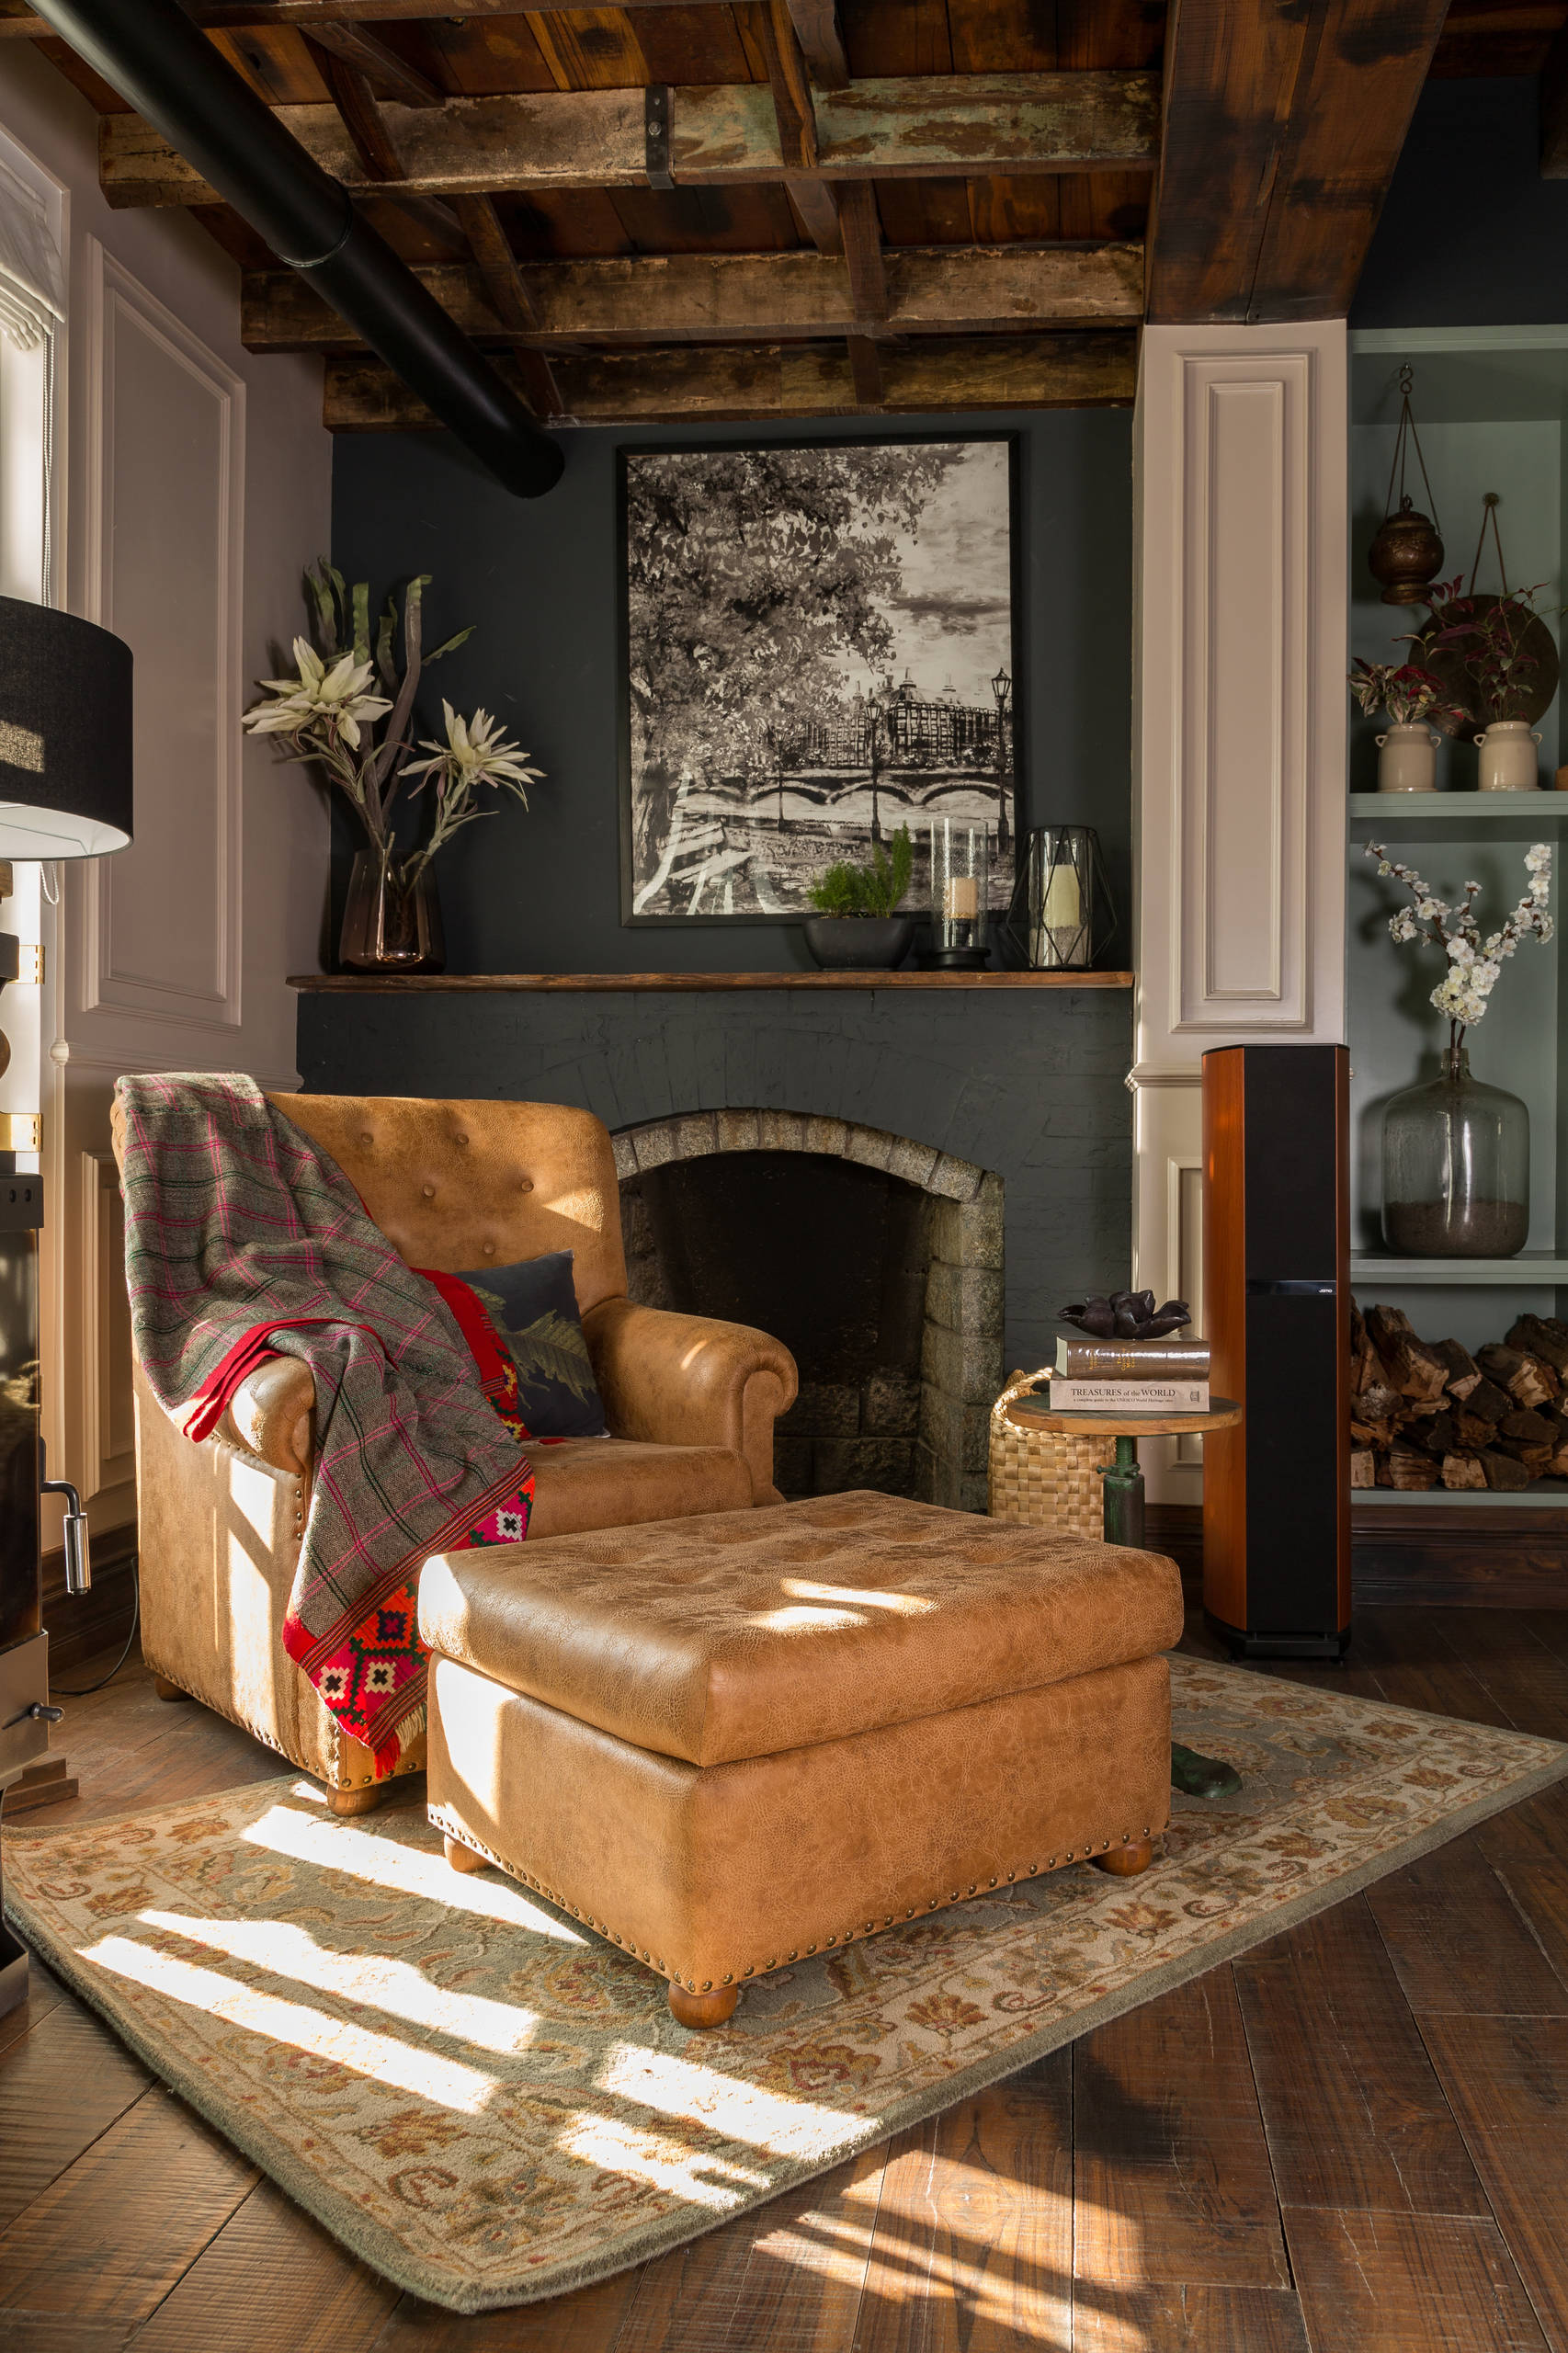 75 Beautiful Black Family Room With A Brick Fireplace Pictures Ideas March 2021 Houzz